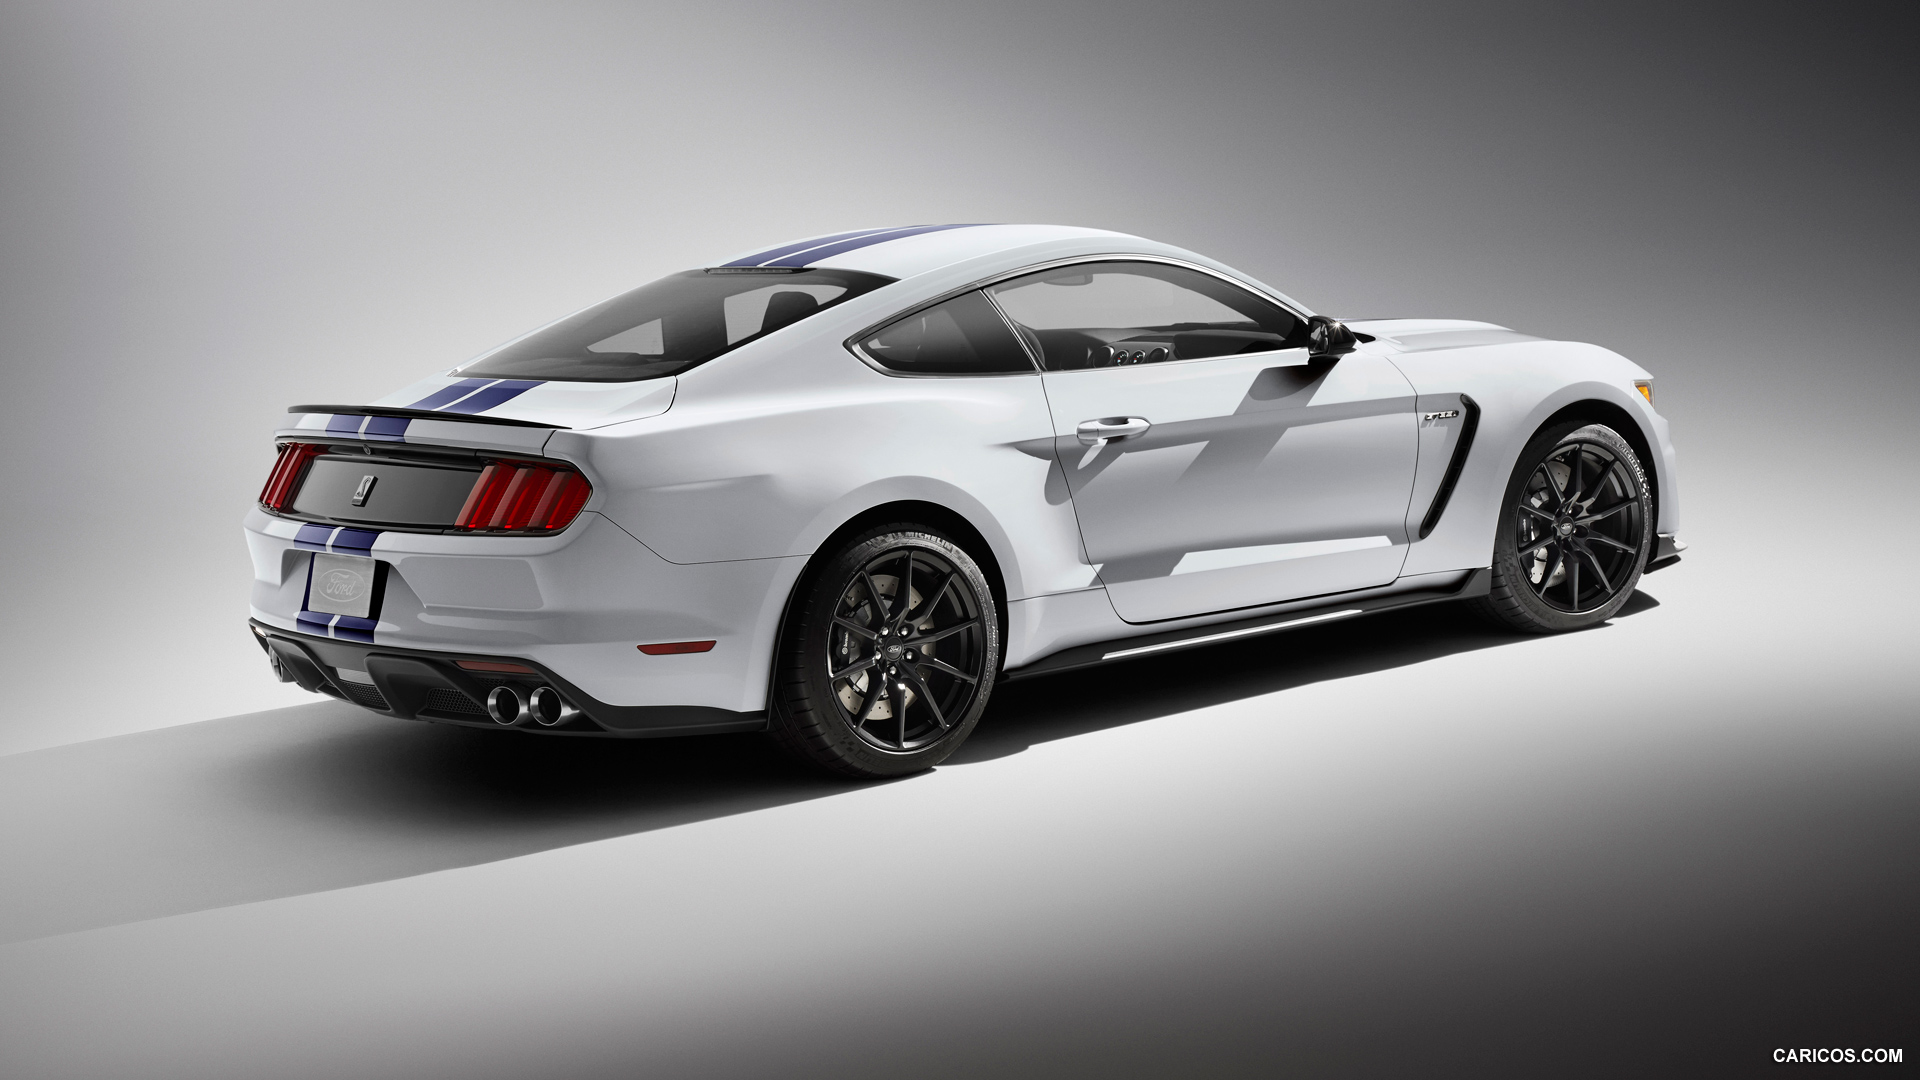 1920x1080 - Shelby Mustang GT 350 Wallpapers 29